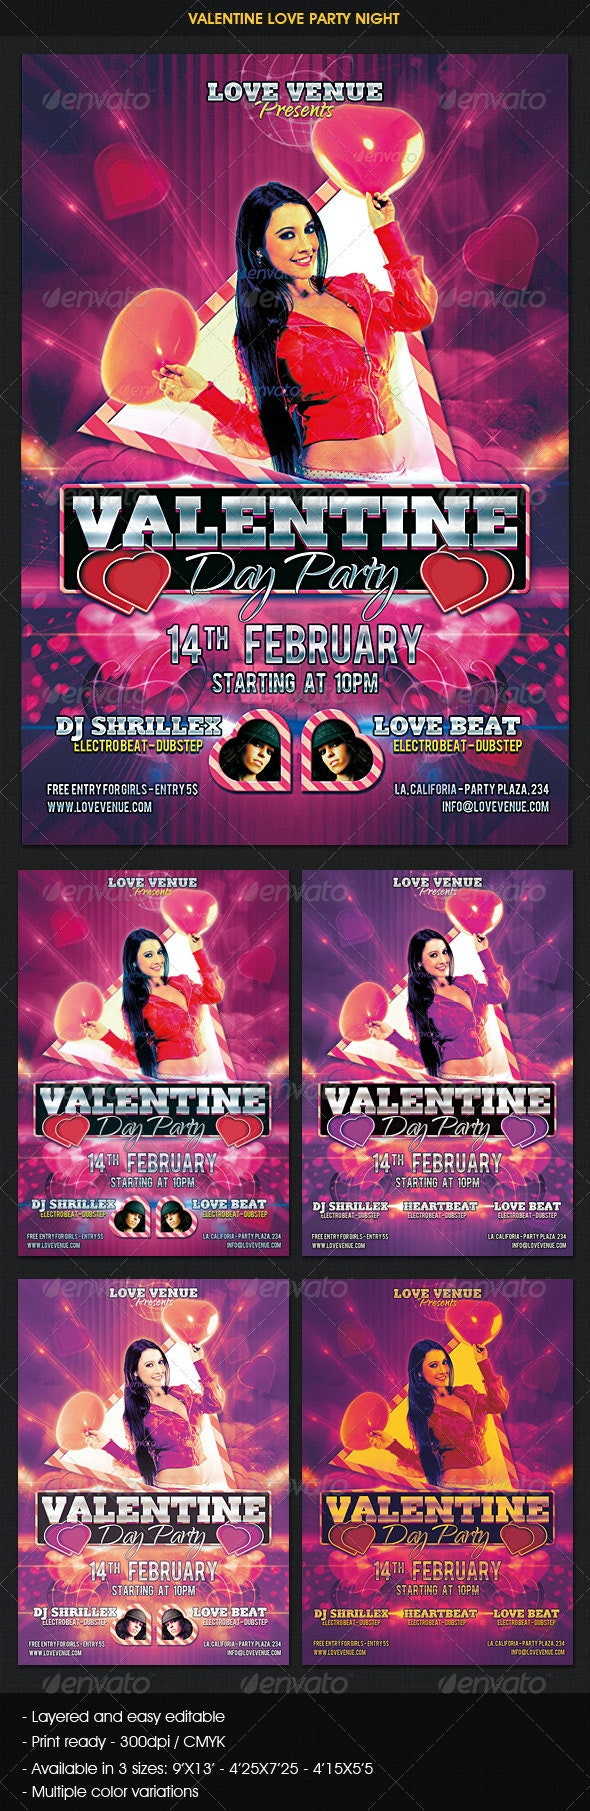 Valentine Love Party Night Flyer - Clubs & Parties Events